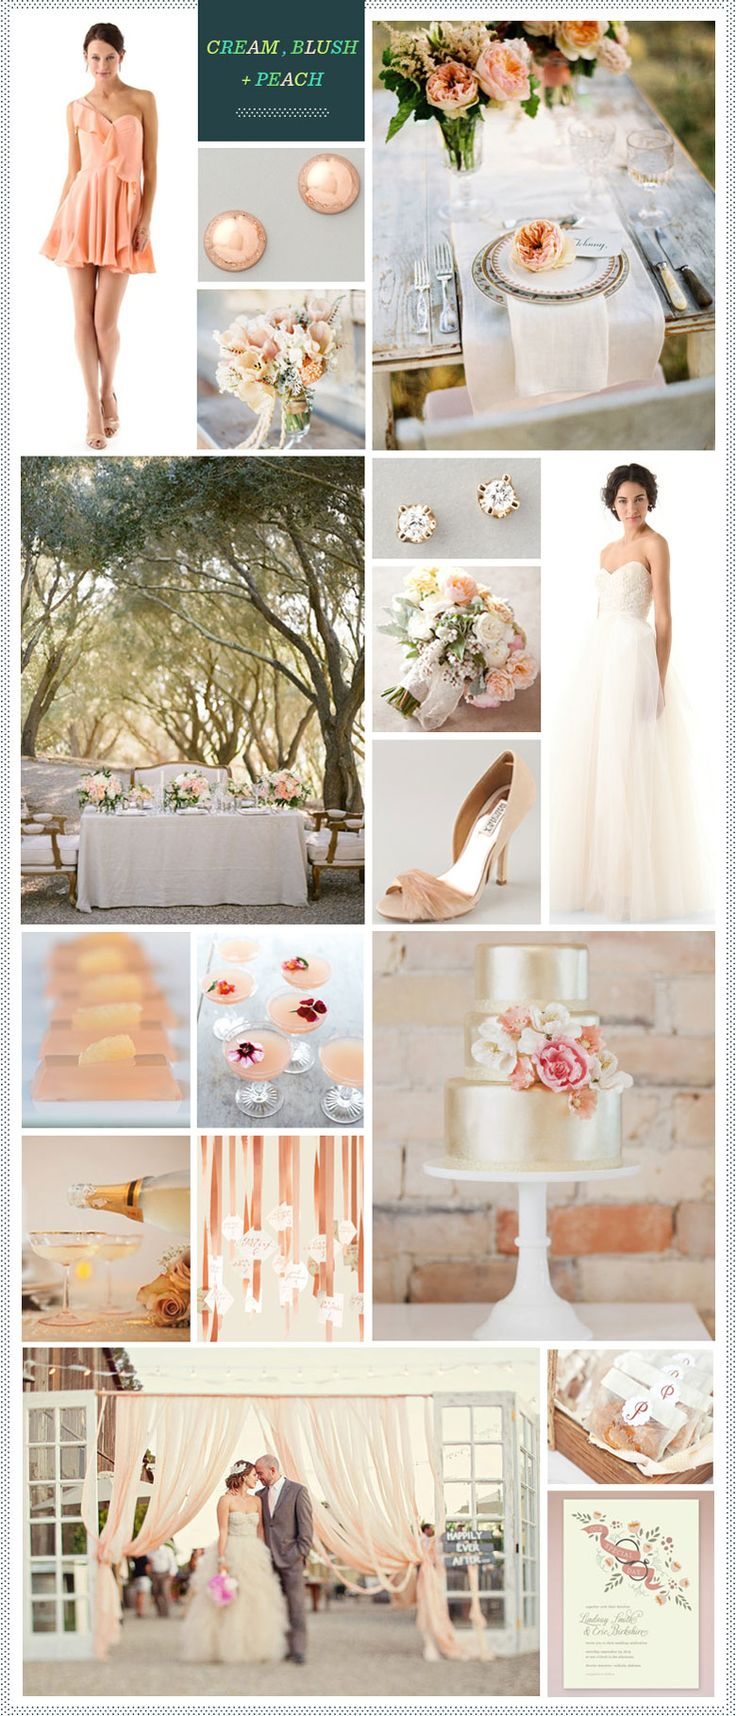 Cream, Blush + Peach wedding inspiration is the perfect blend of soft hues and modern romance. Imagine your big day beneath a canopy of trees with vintage place settings, an elegant gold cake, and of course, a killer dress!  Whoever said subtle shades don't make a big impact?